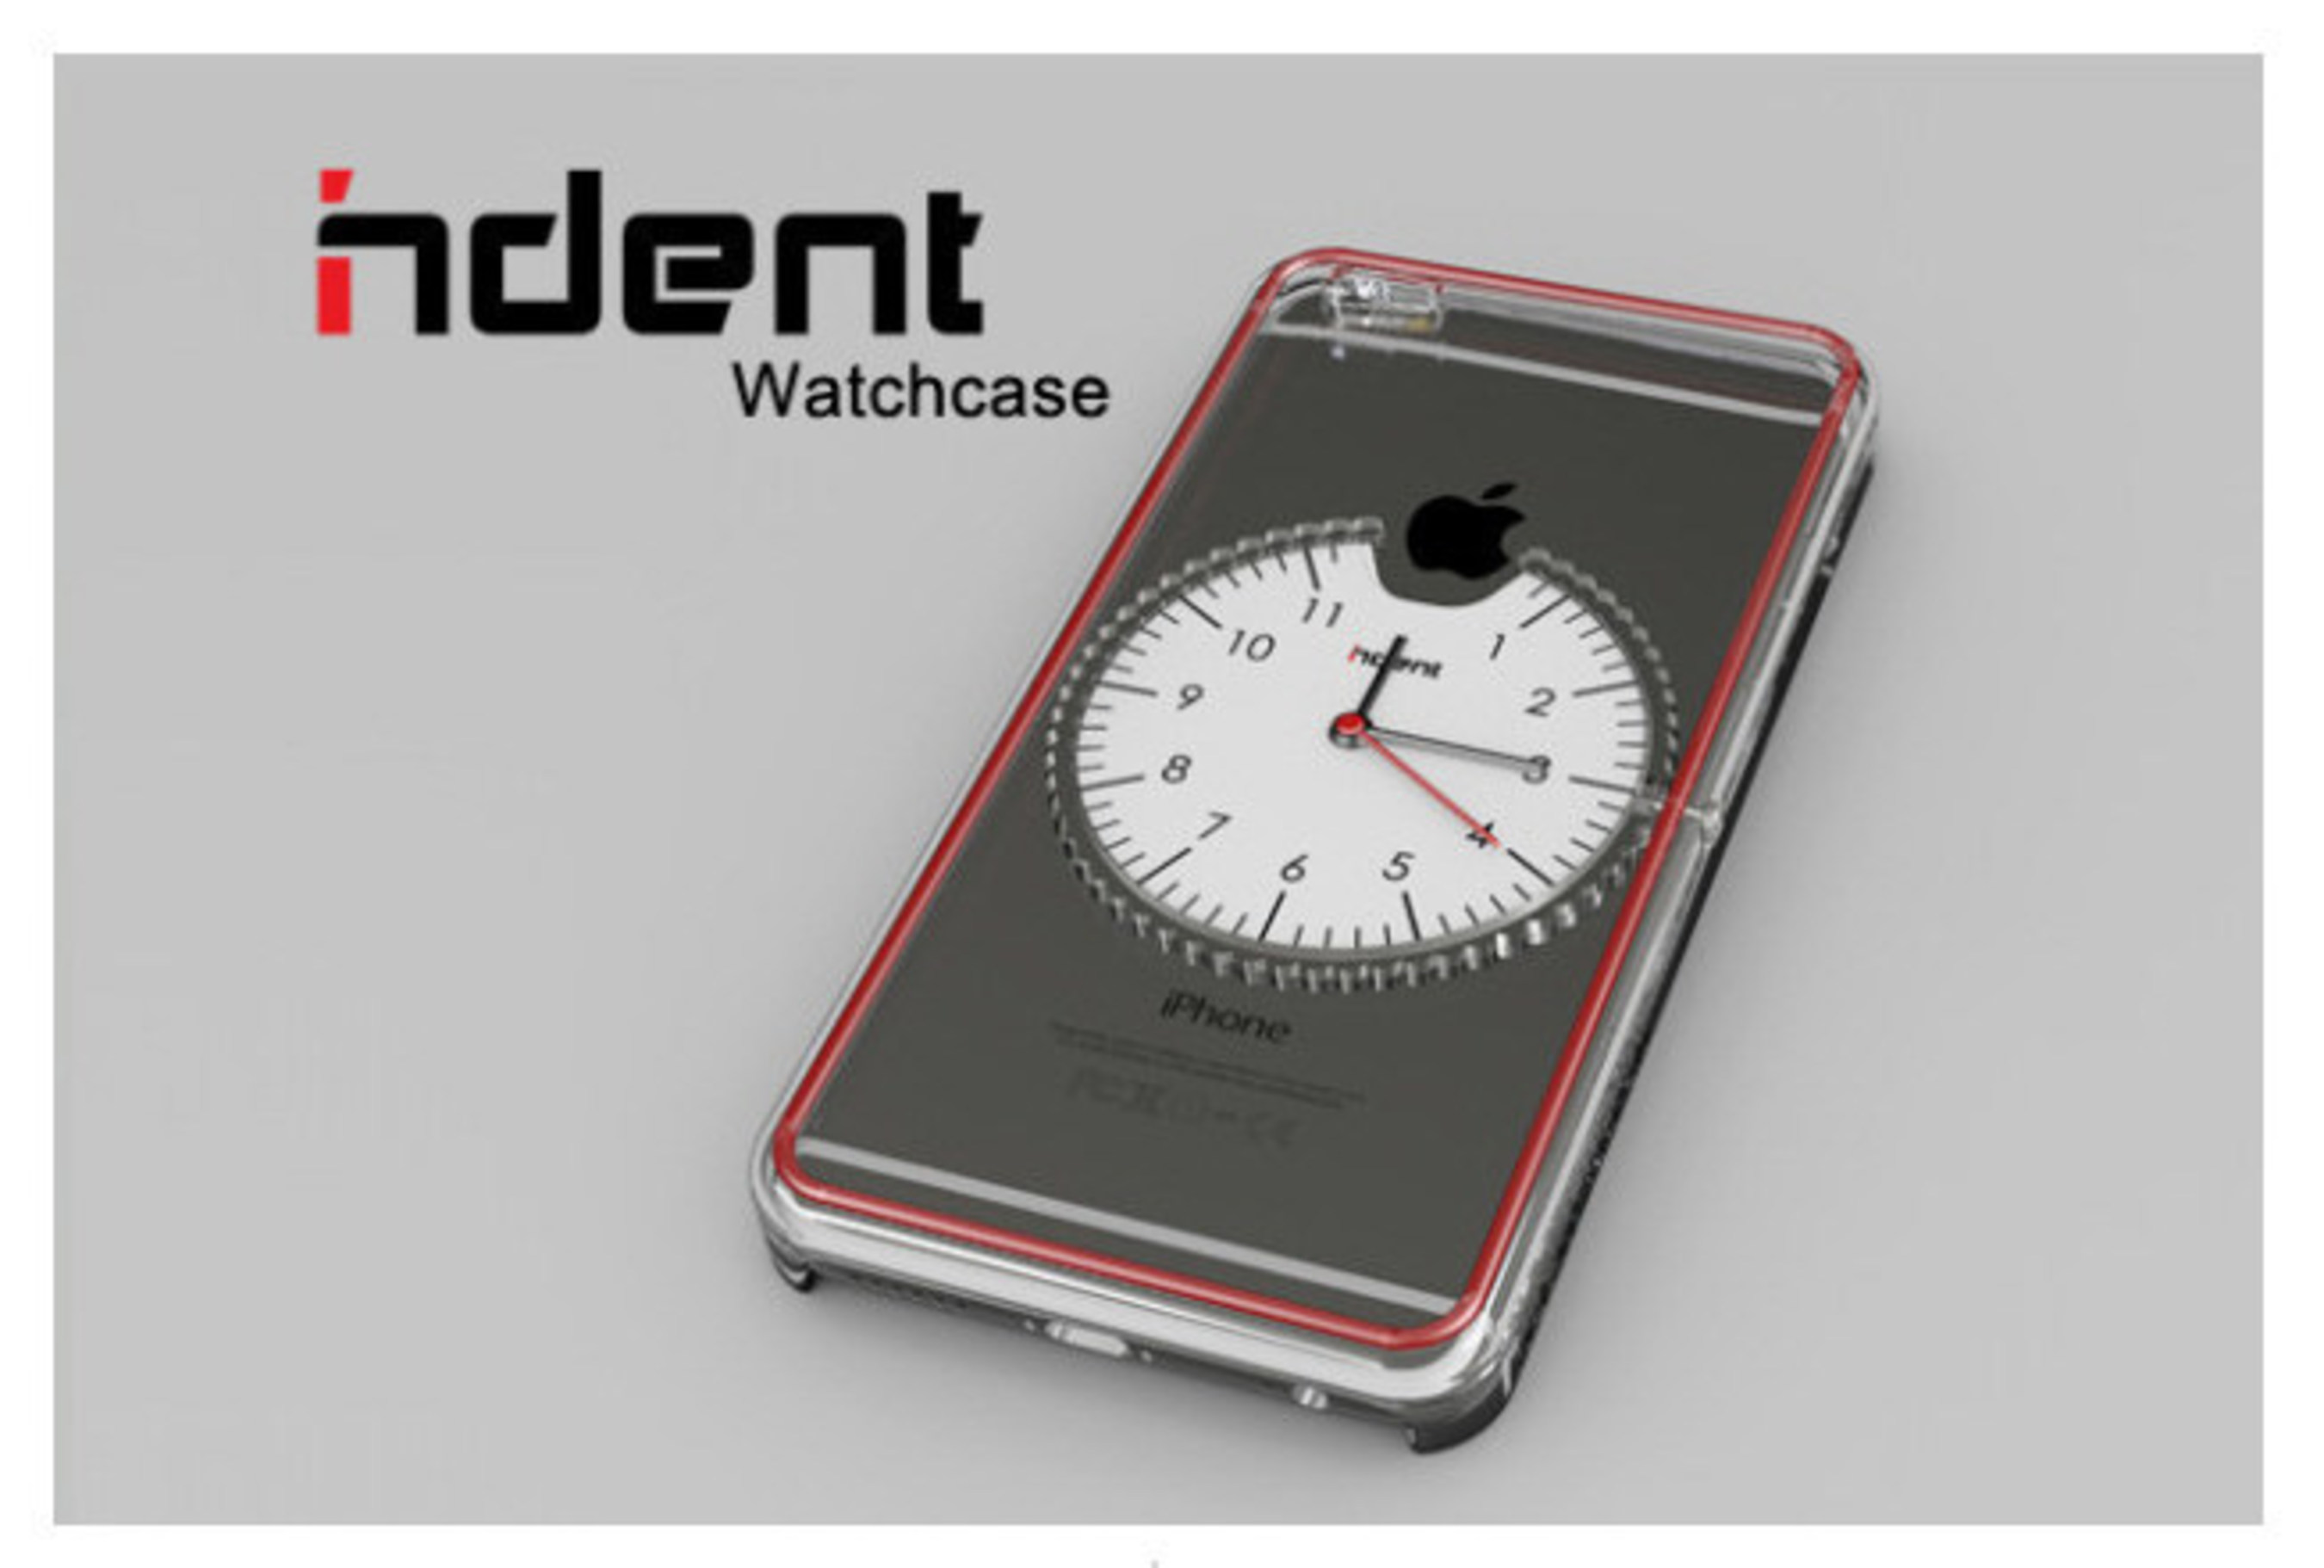 InDent Watchcase: Less Tech, More Time